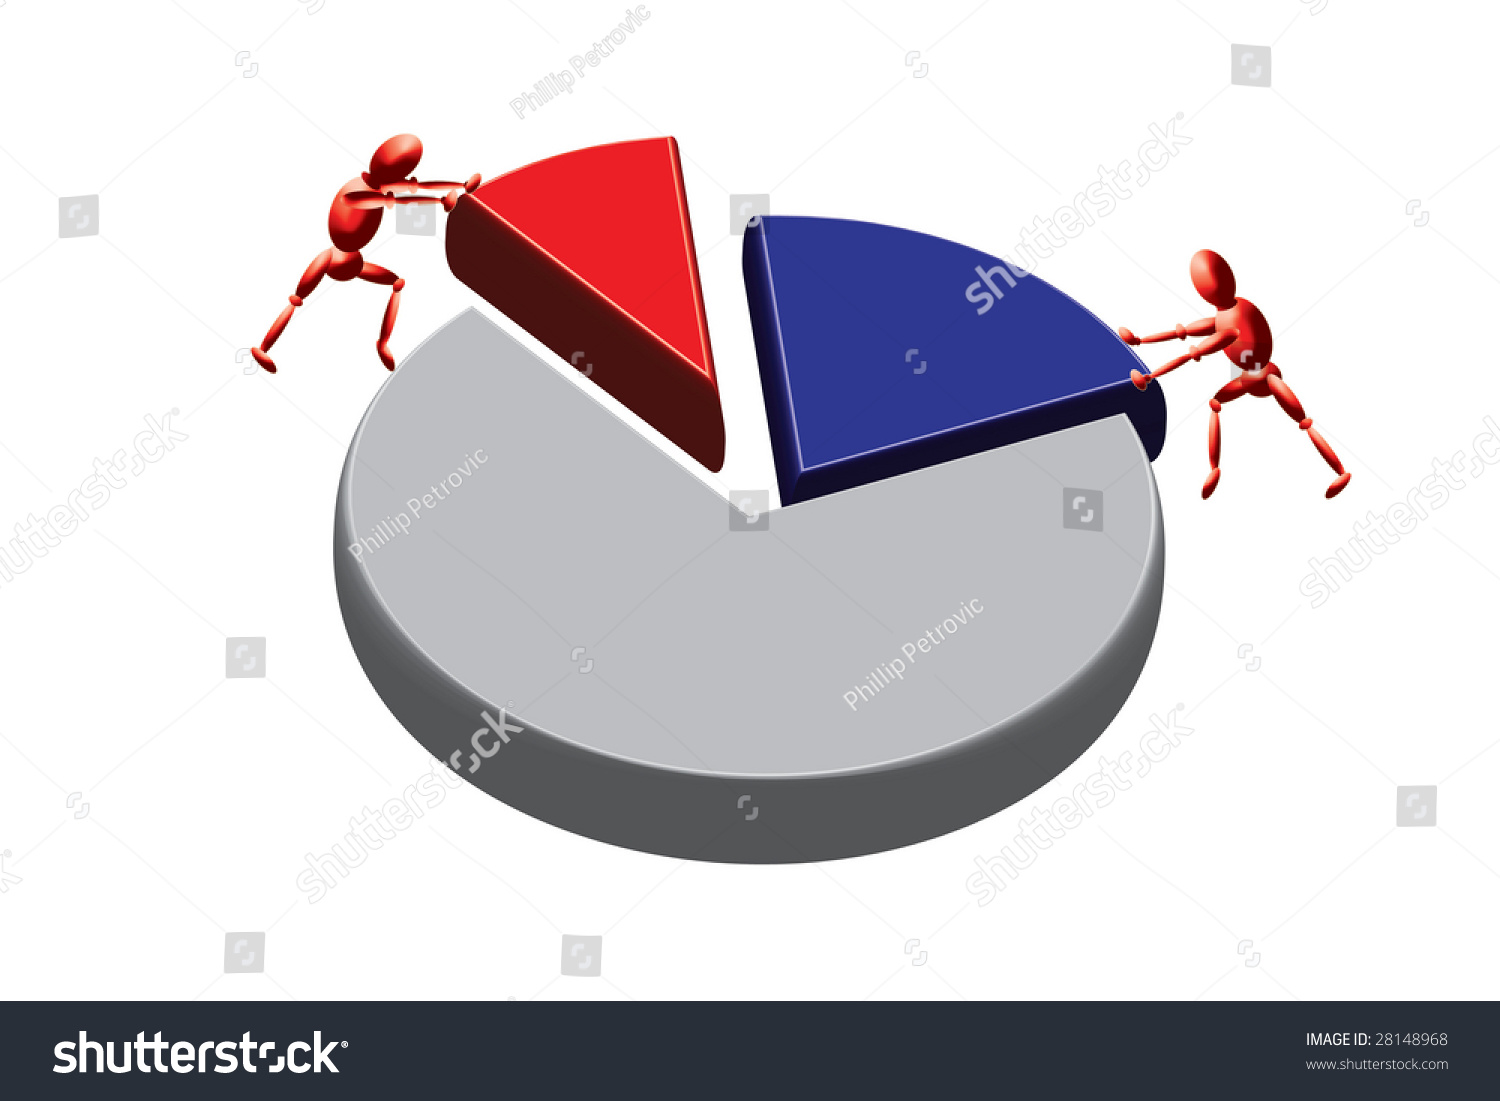 Working solve problems pie chart stock illustration 28148968 working to solve problems pie chart nvjuhfo Image collections